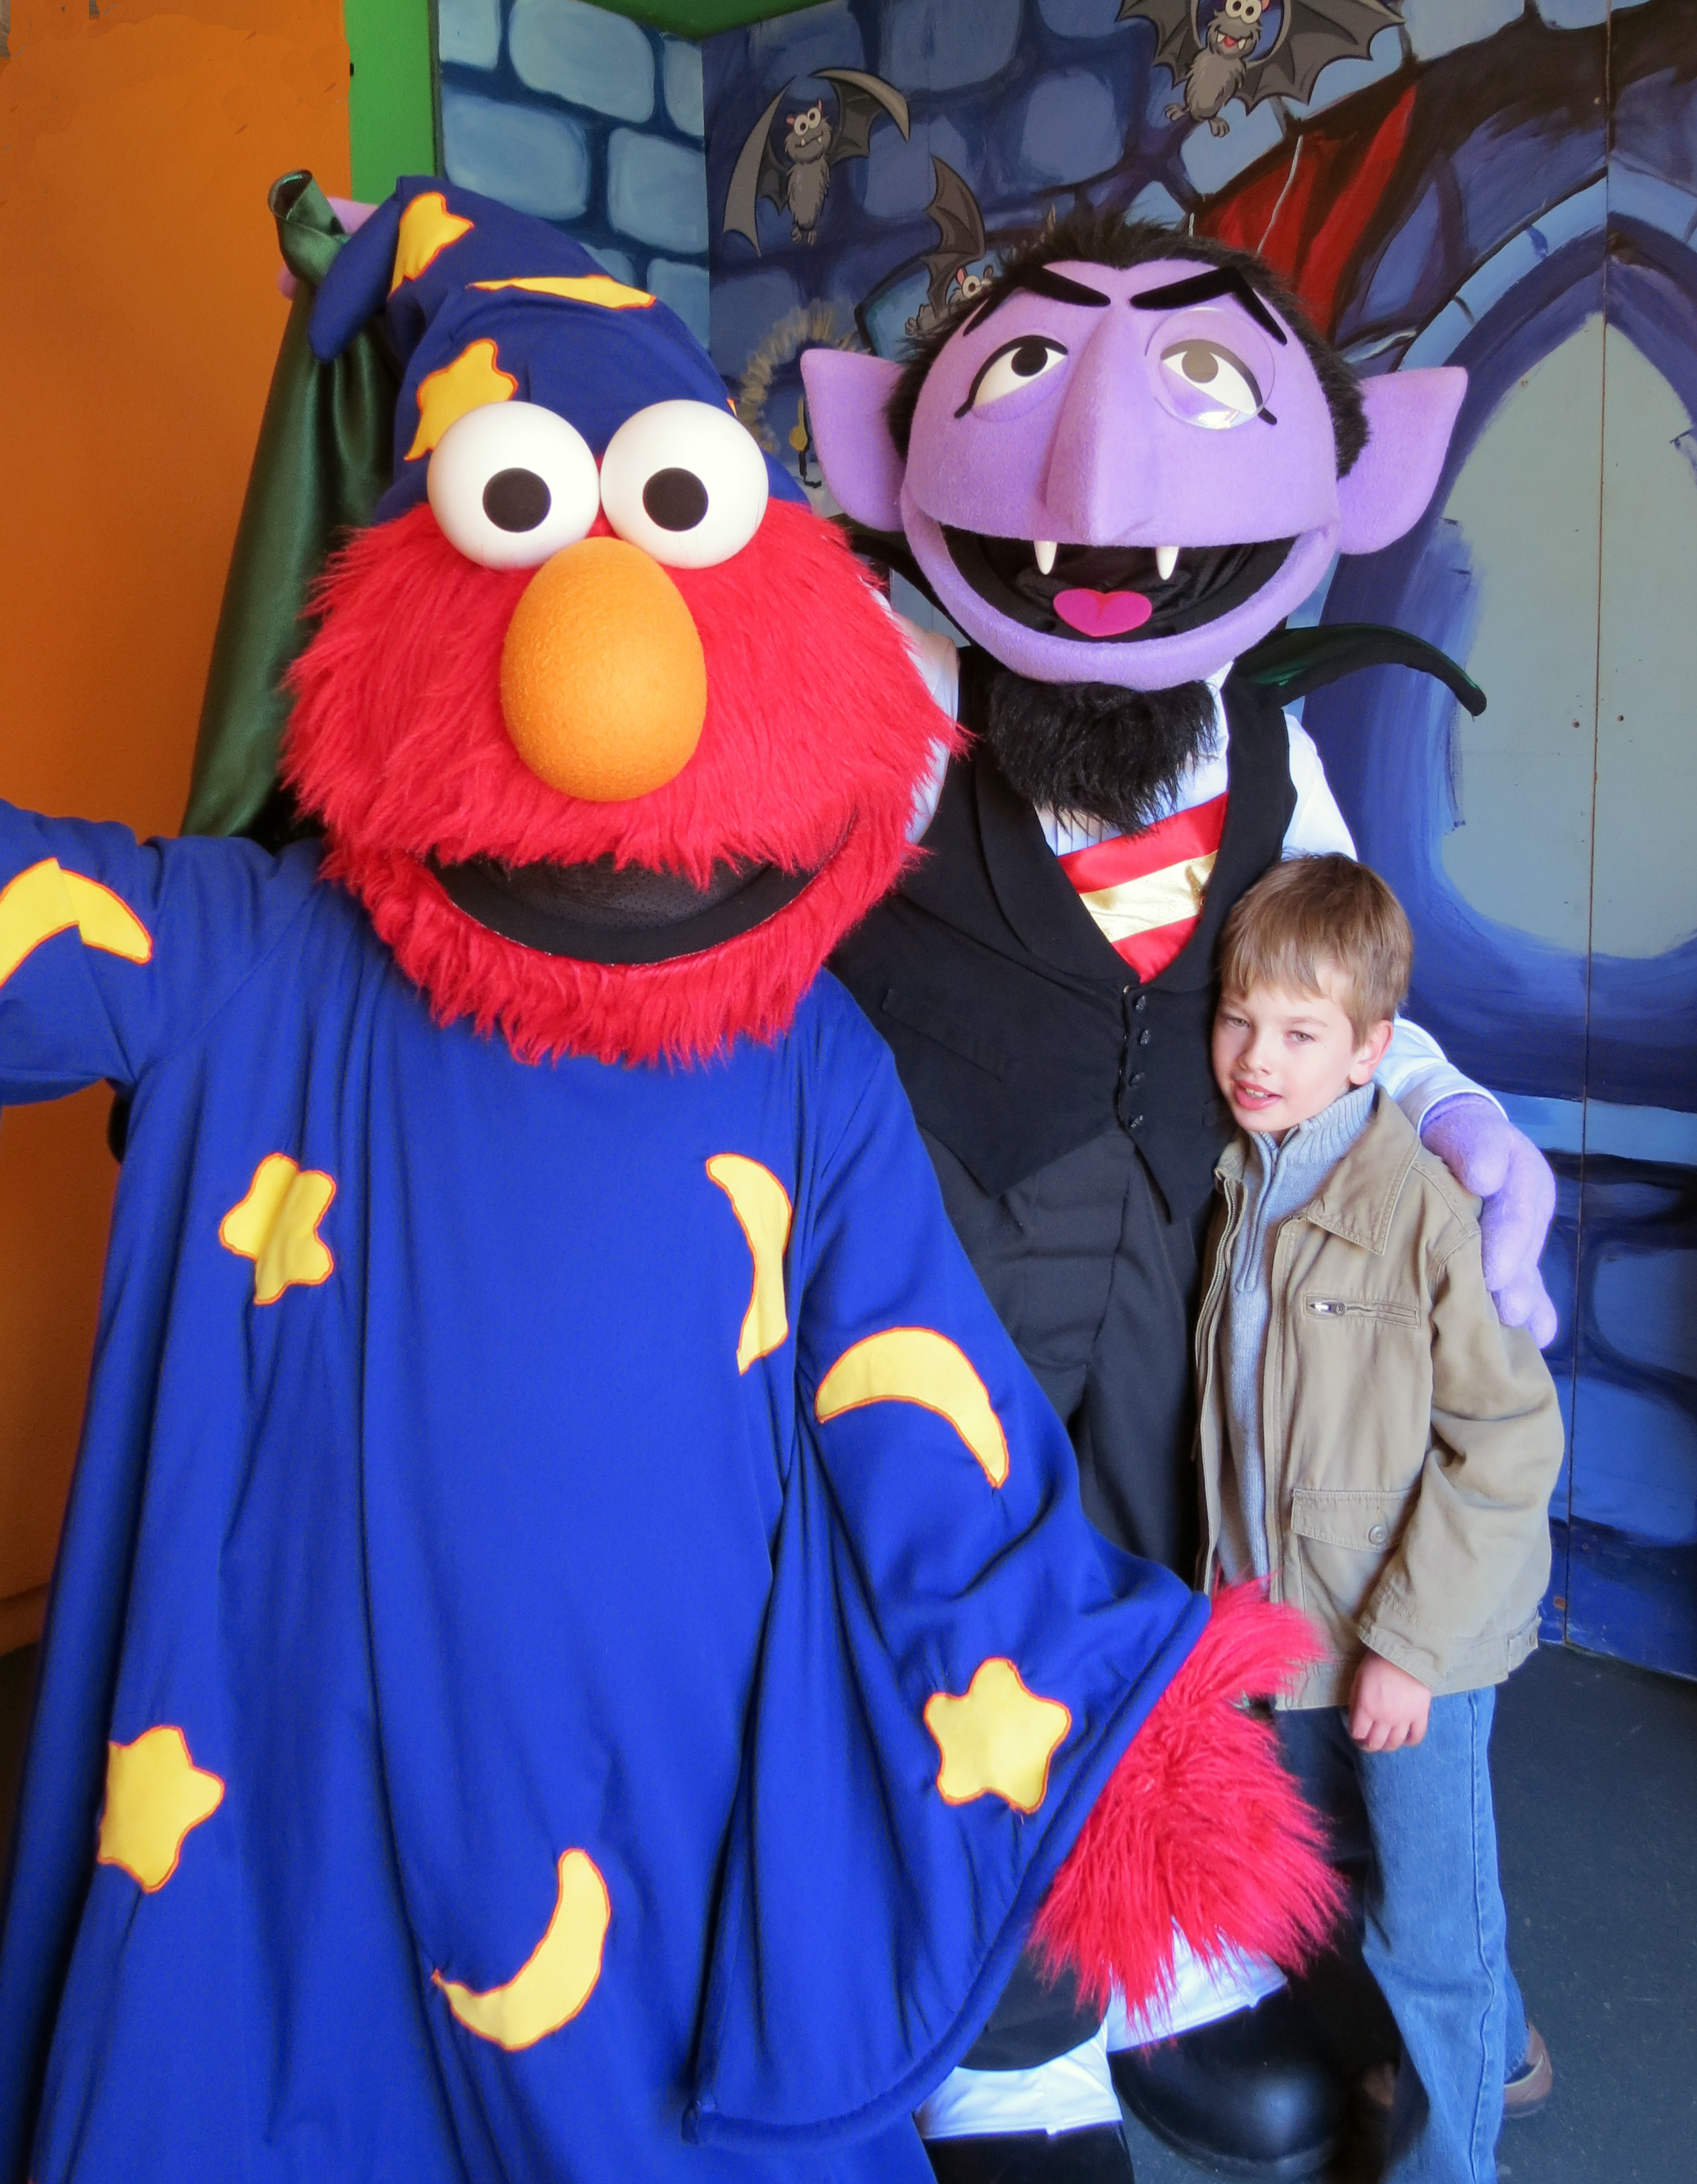 Landon with the Count and Elmo